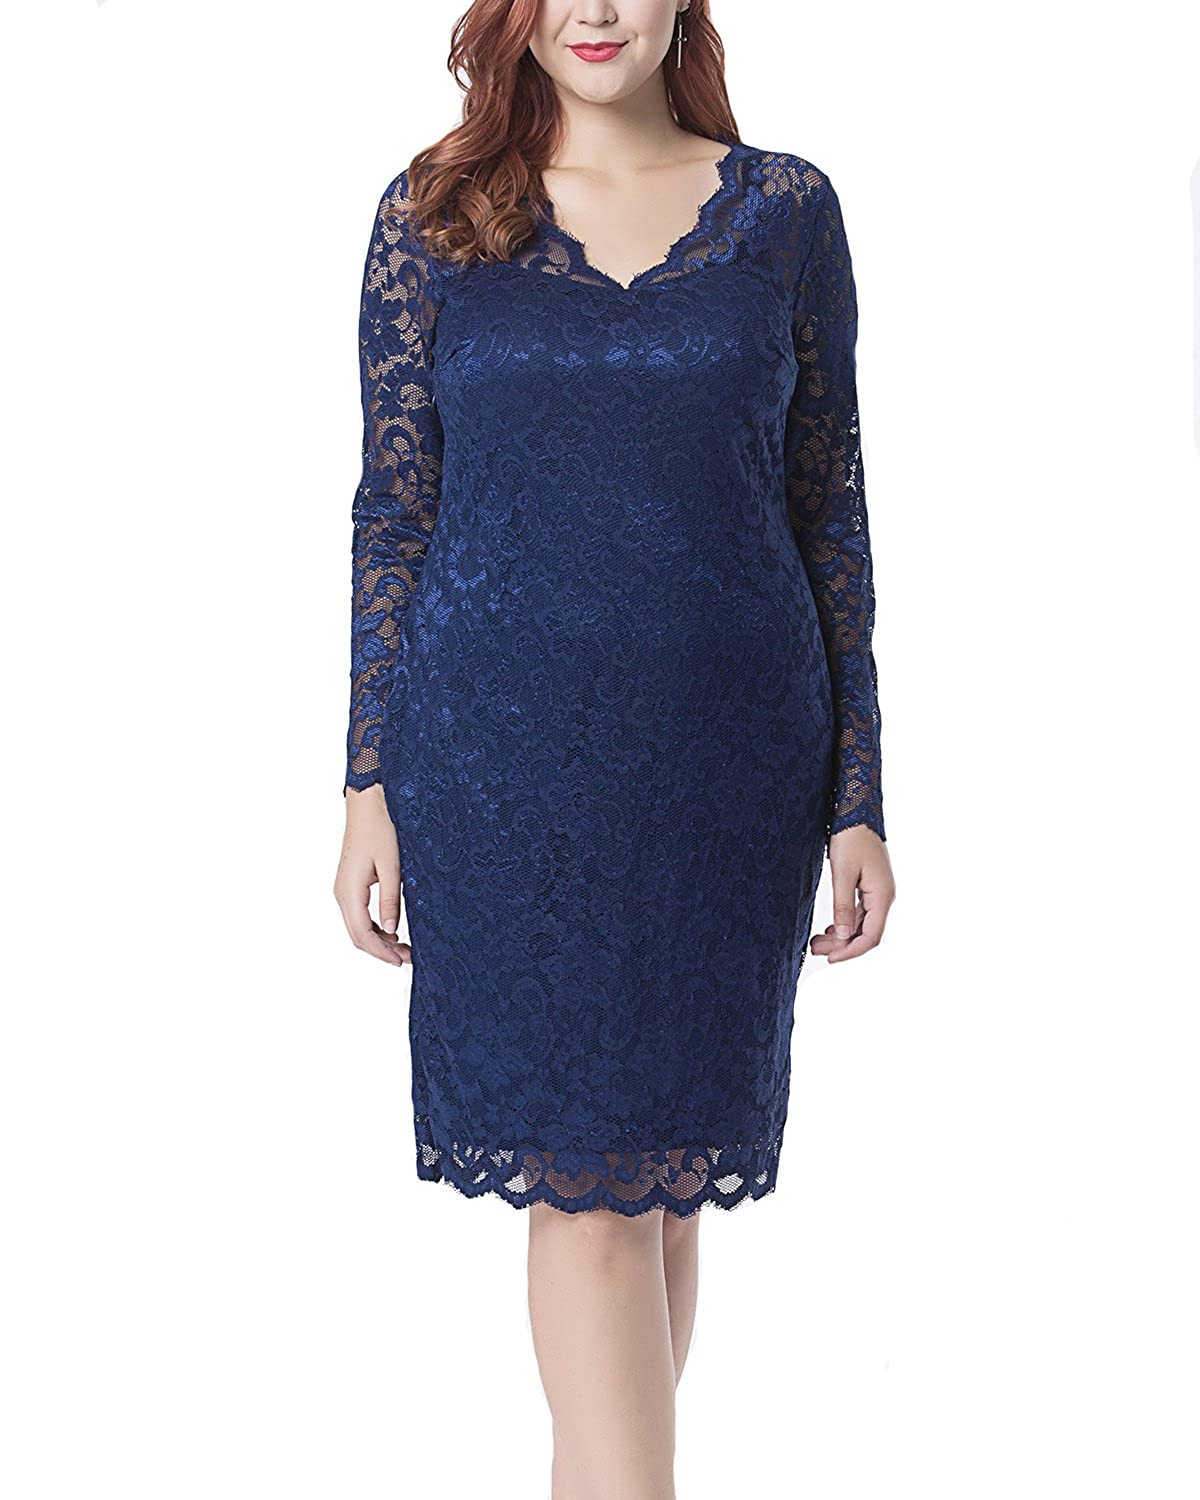 f68eb1089e Women's Lace Plus Size V Neck Sexy Bodycon Party Evening Dress Long Sleeve  Dark Blue 20W at Amazon Women's Clothing store: